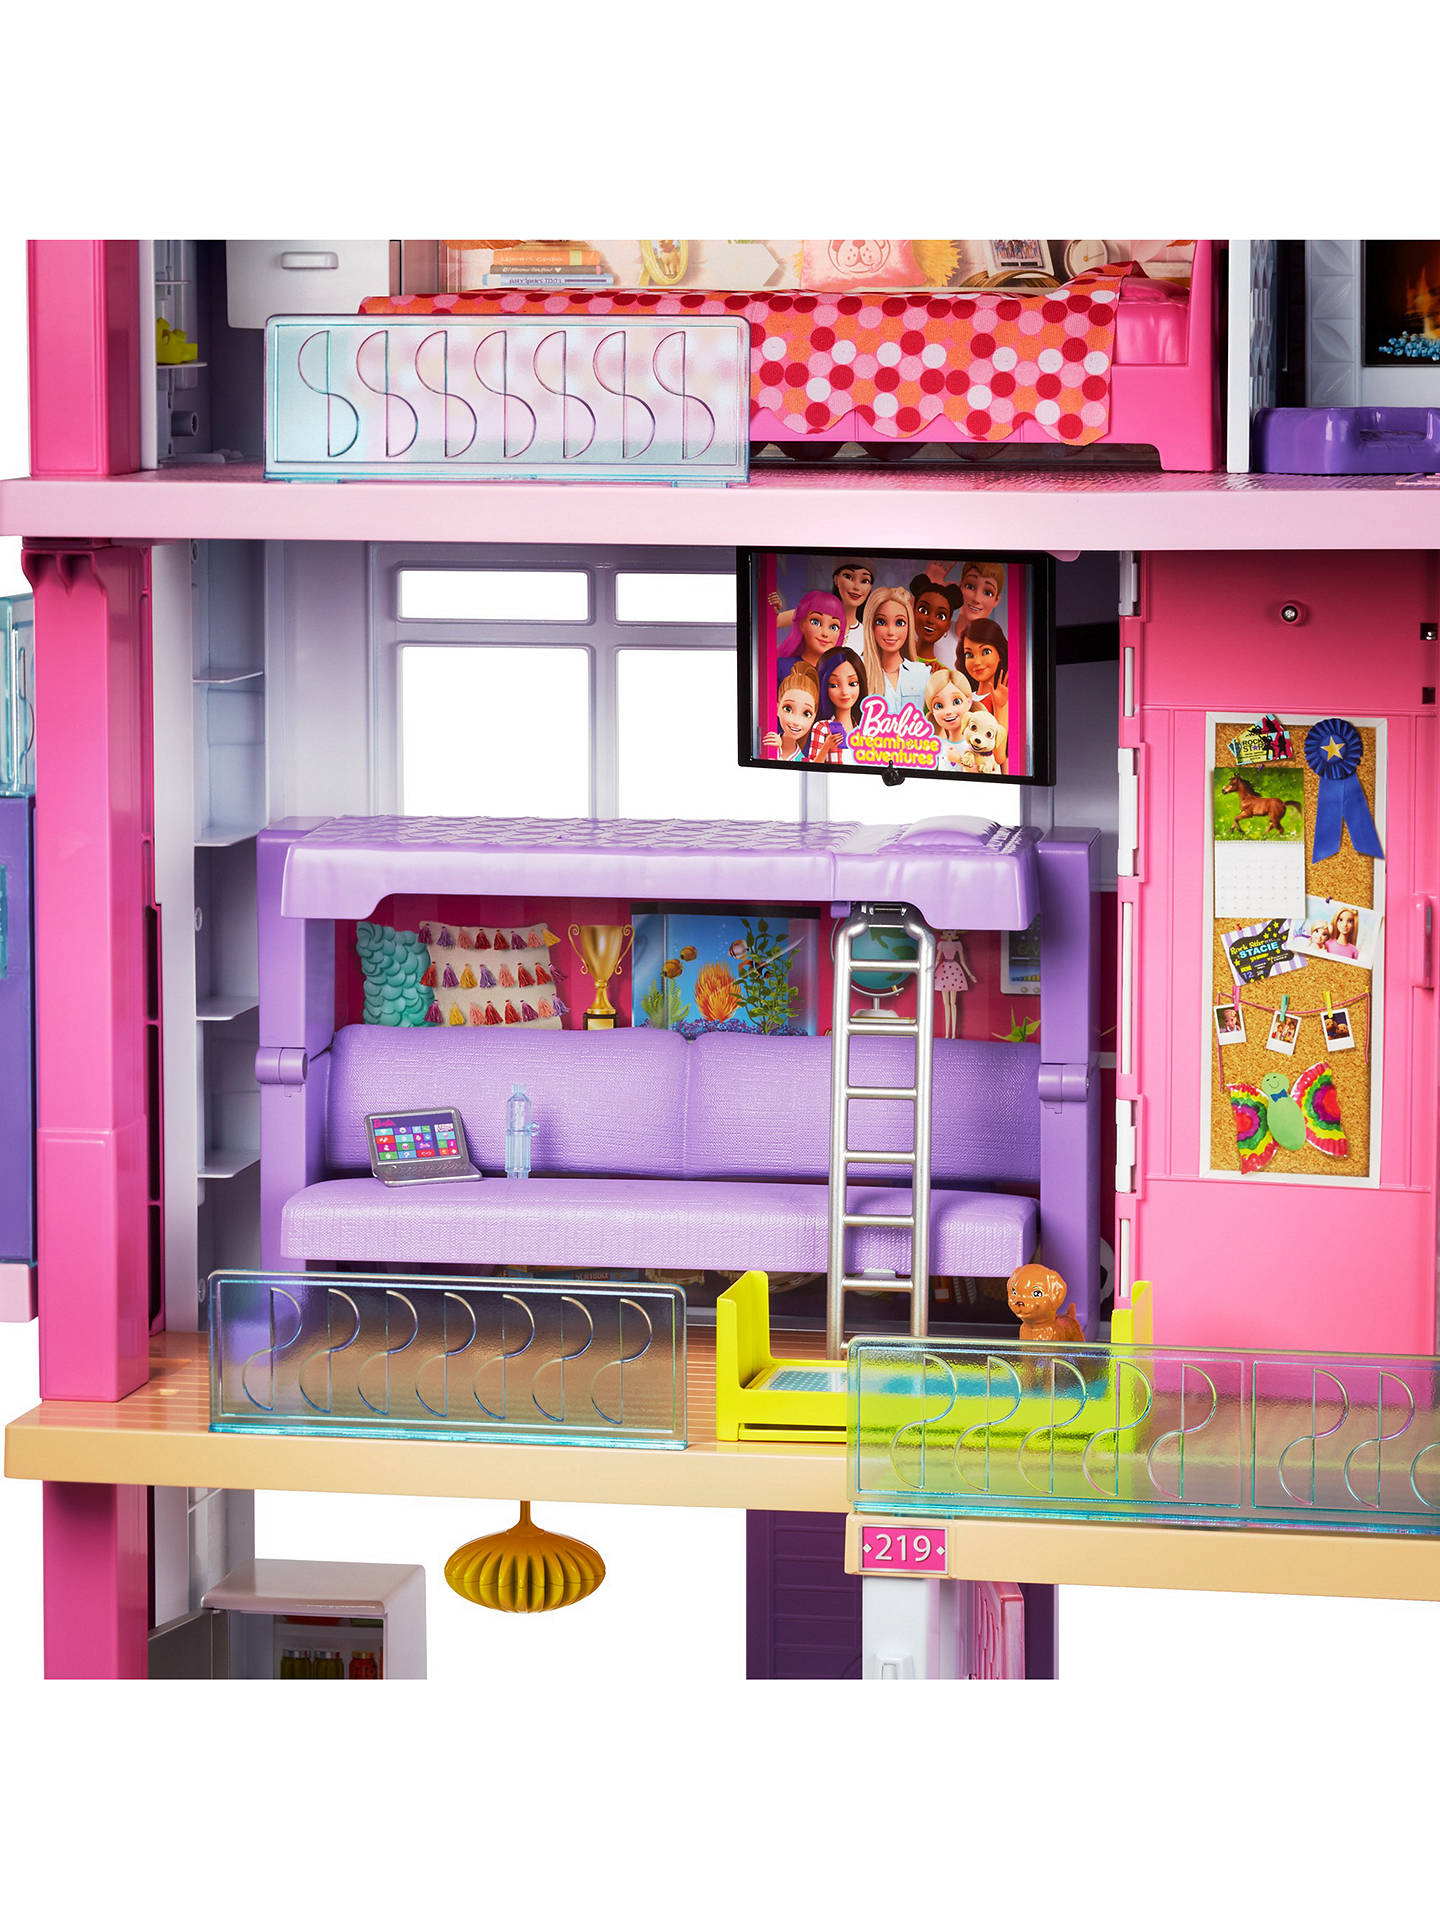 BuyBarbie Dreamhouse With Slide Online at johnlewis.com